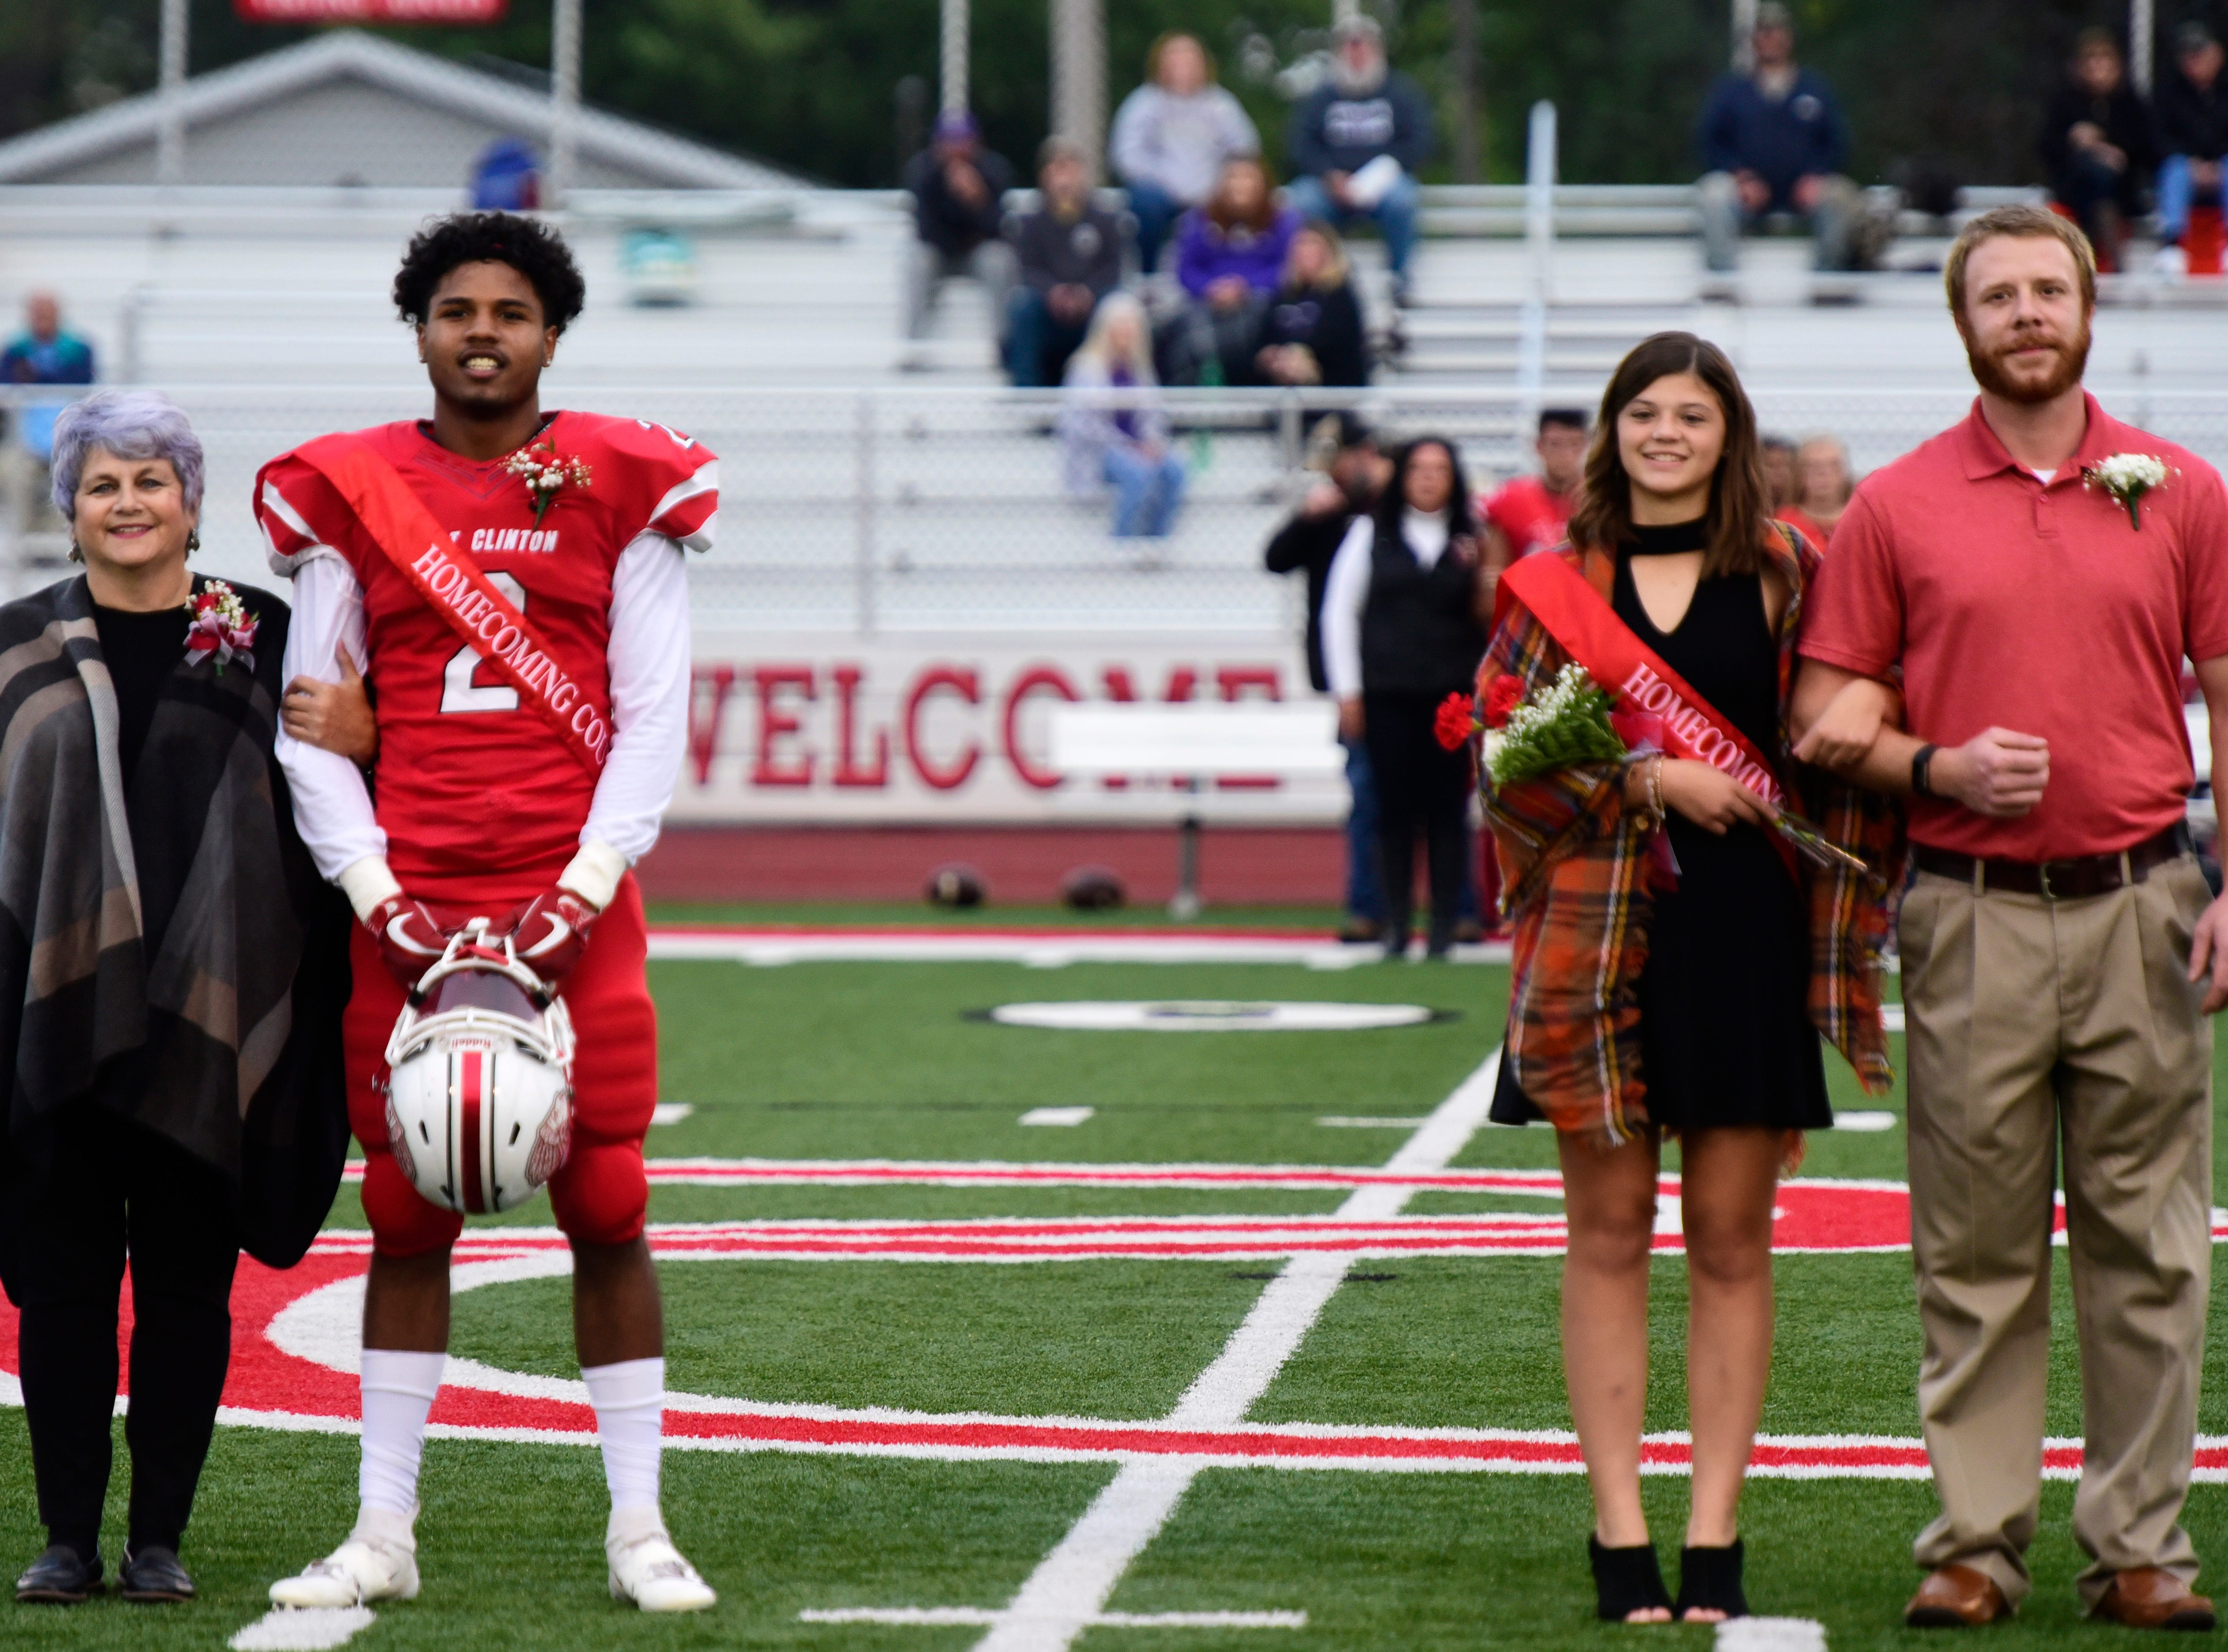 Port Clinton High School 2018 sophomore homecoming attendants Jonah Sidney, left, and Averie Webb.